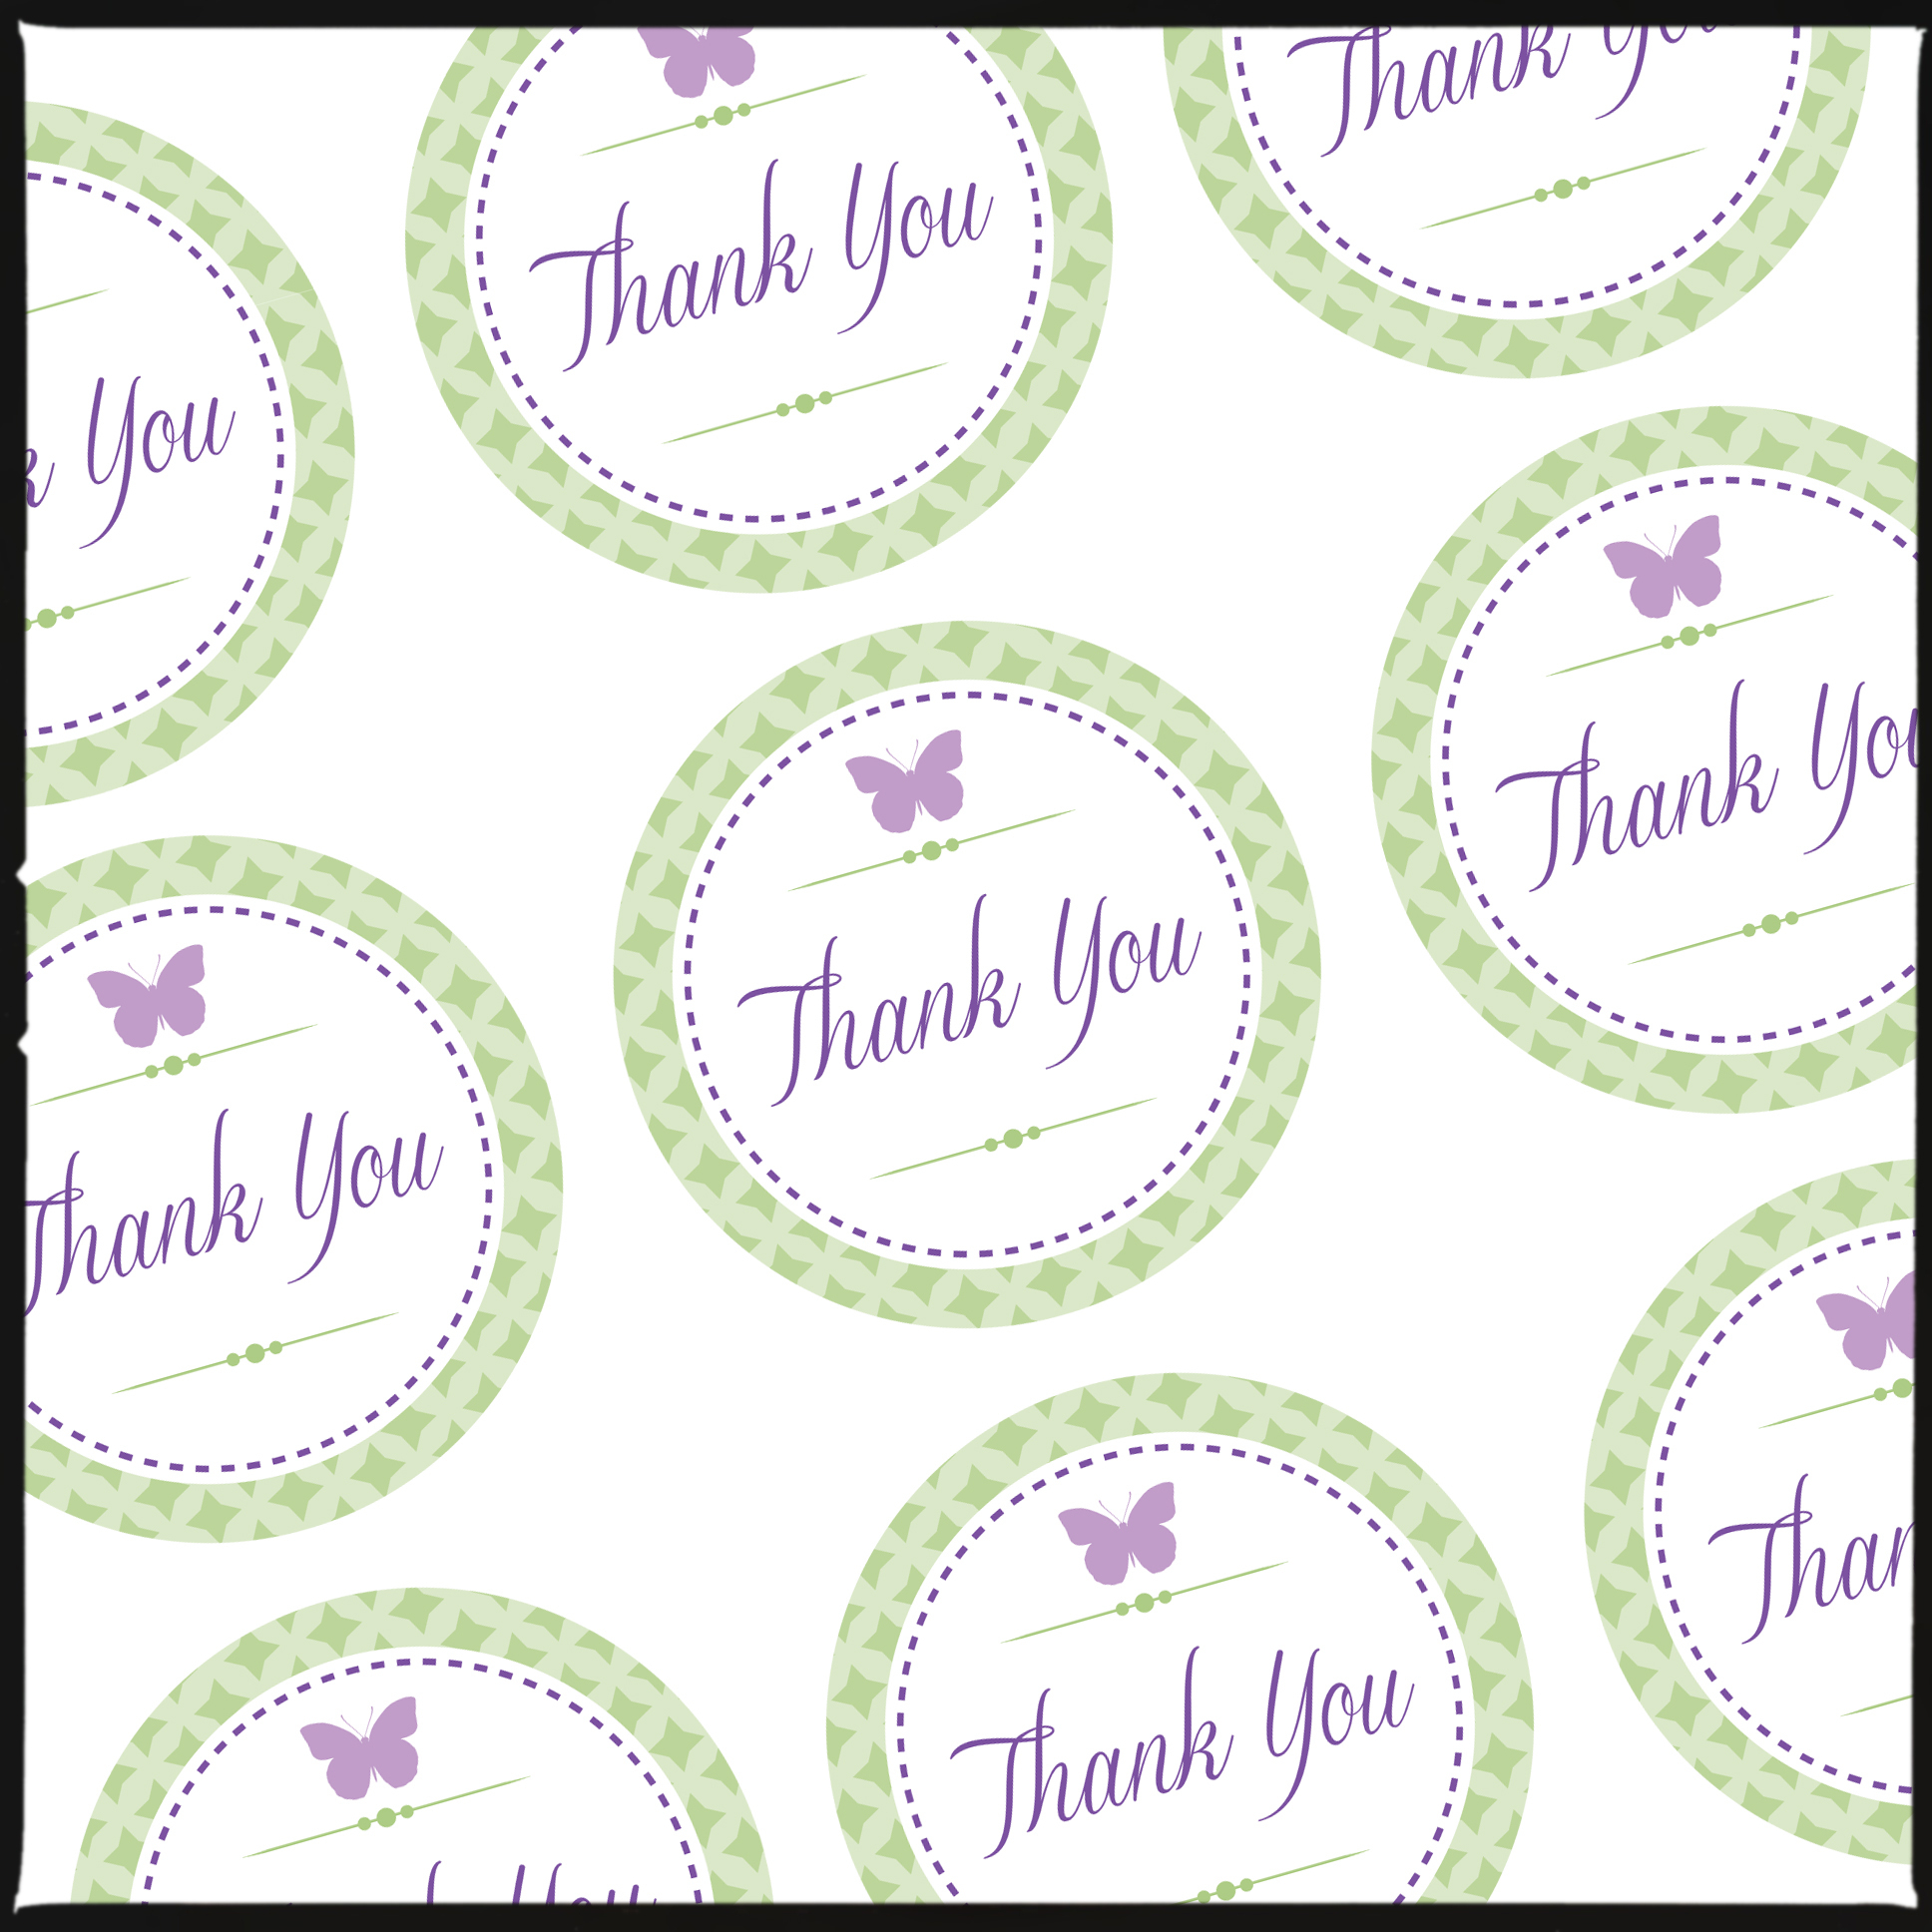 Thank You Tags For Pretty Gift Bags (& A Free Download For You - Free Printable Thank You Tags For Birthday Favors